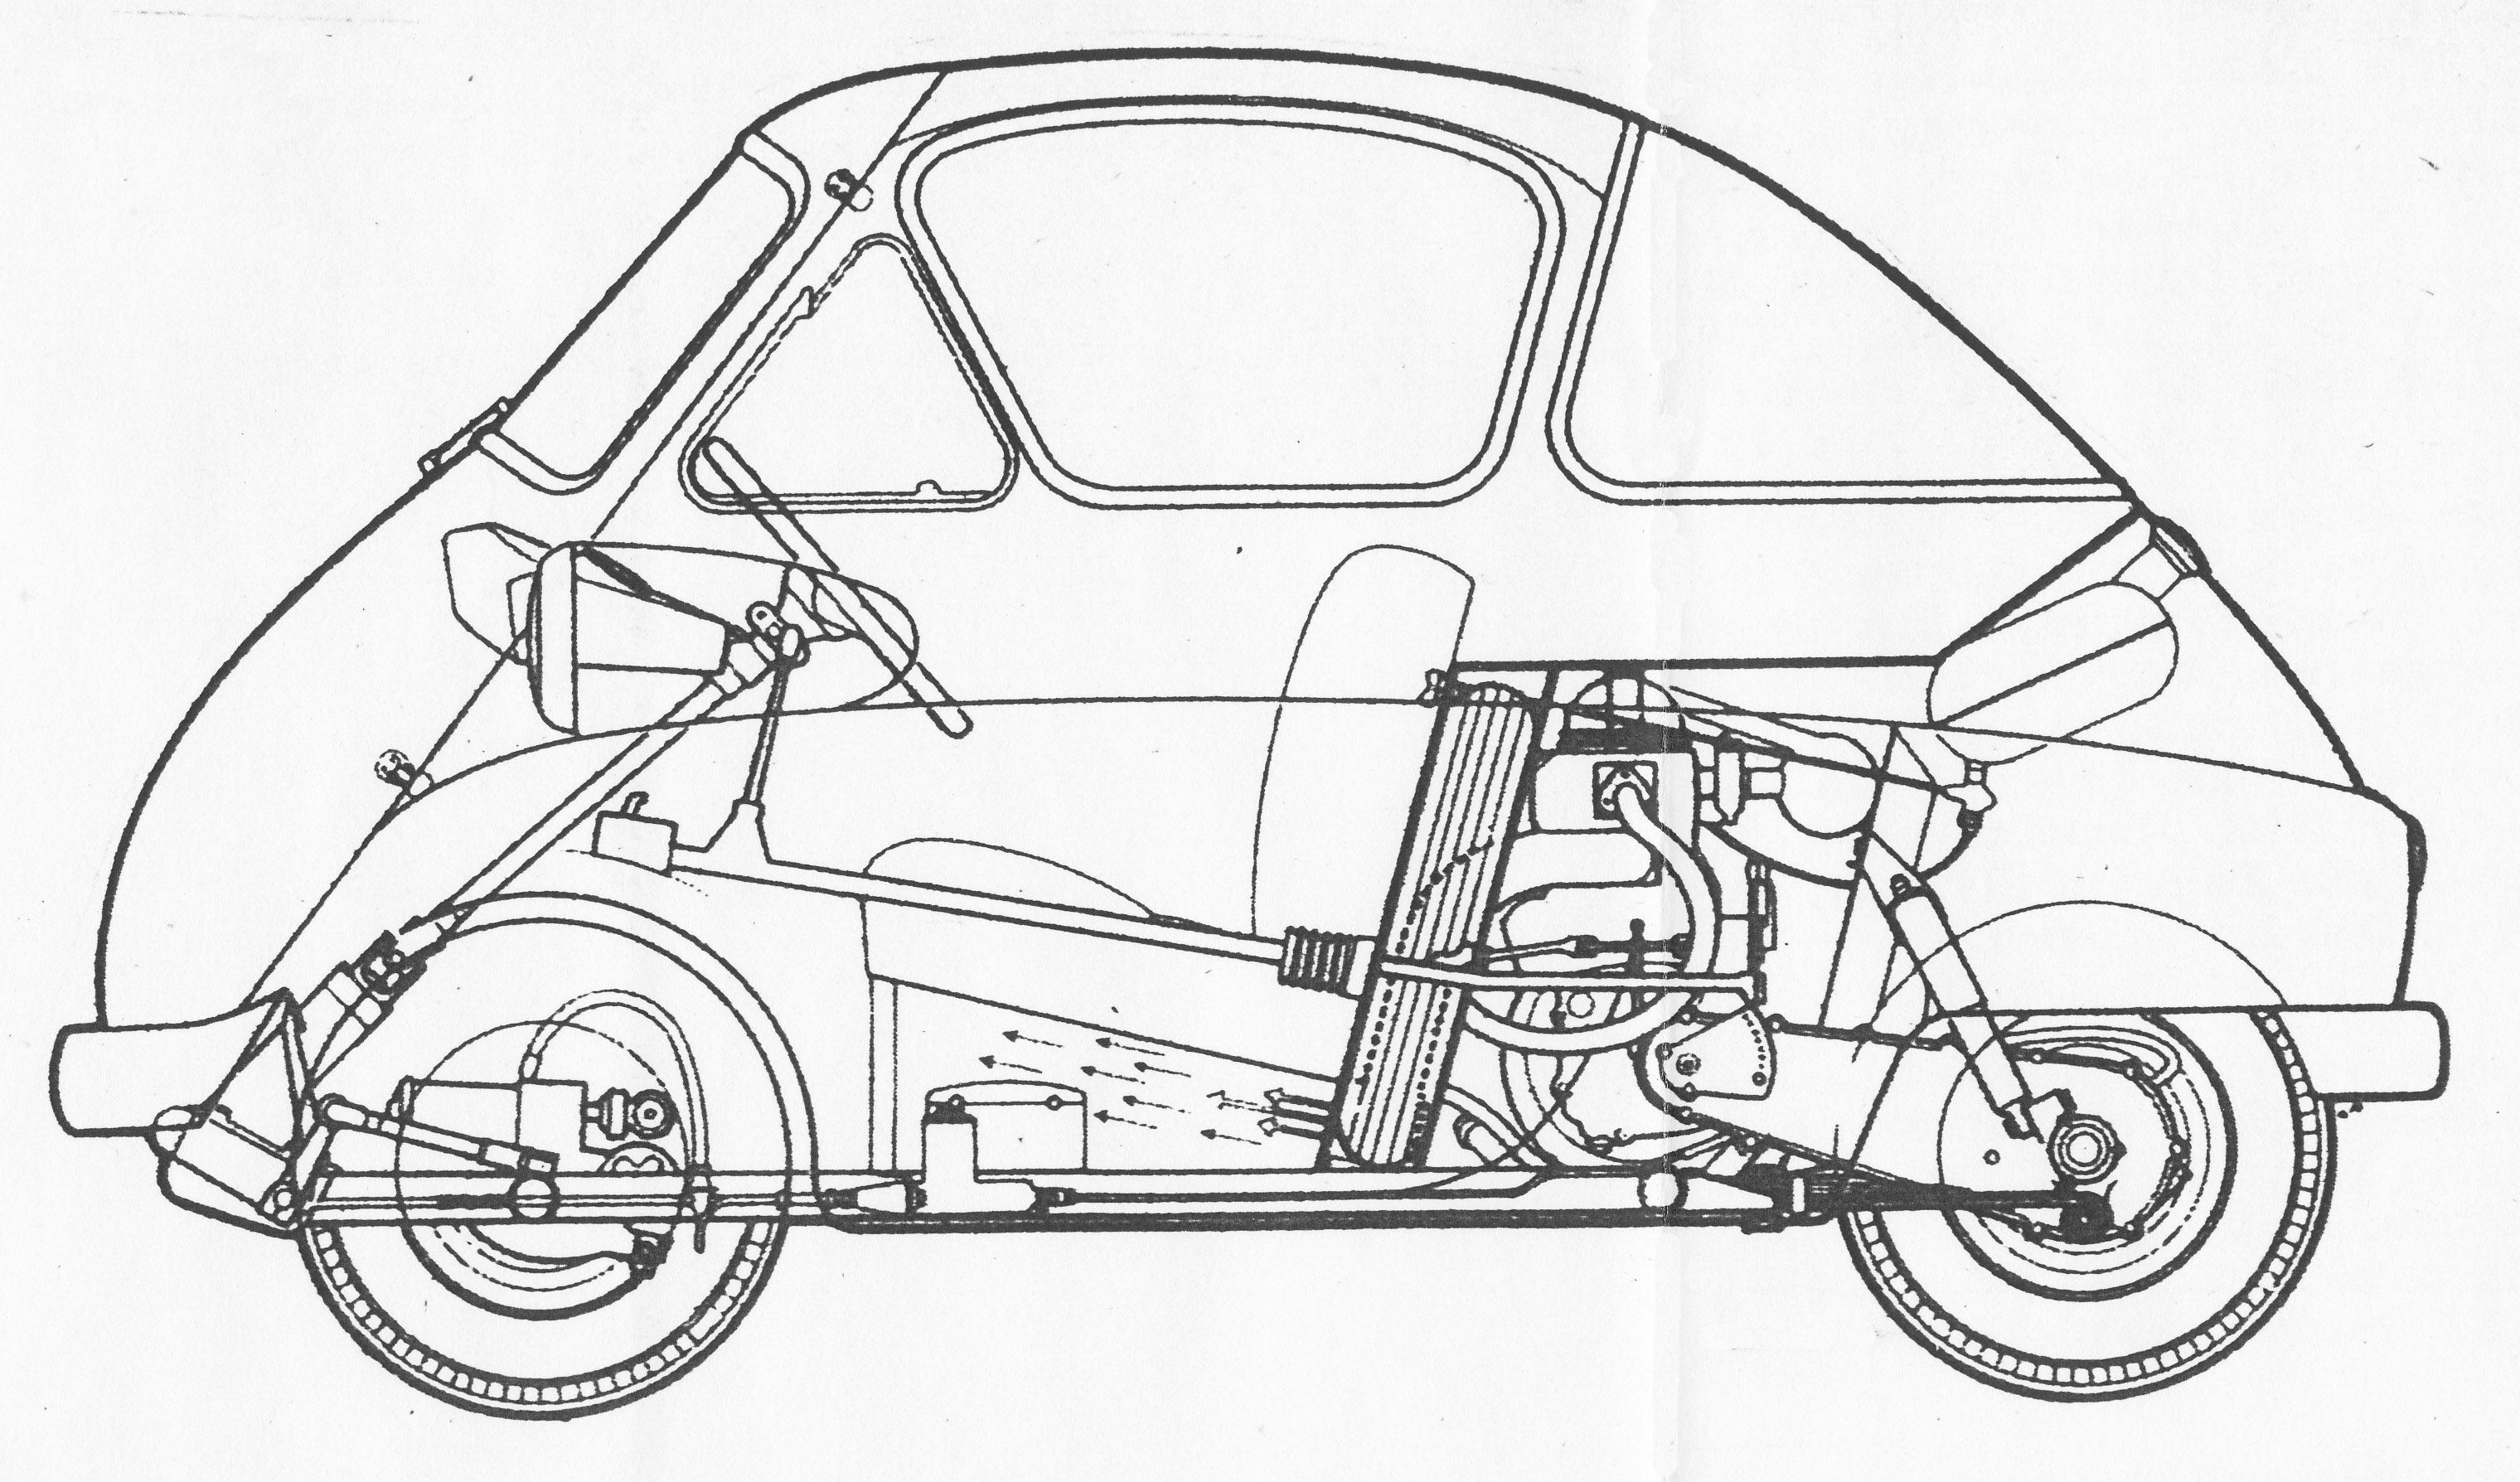 8c600fd05e38977998f55cc8980e14a6 bmw isetta (1959) smcars net car blueprints forum vehicle i bmw isetta 300 wiring diagram at fashall.co